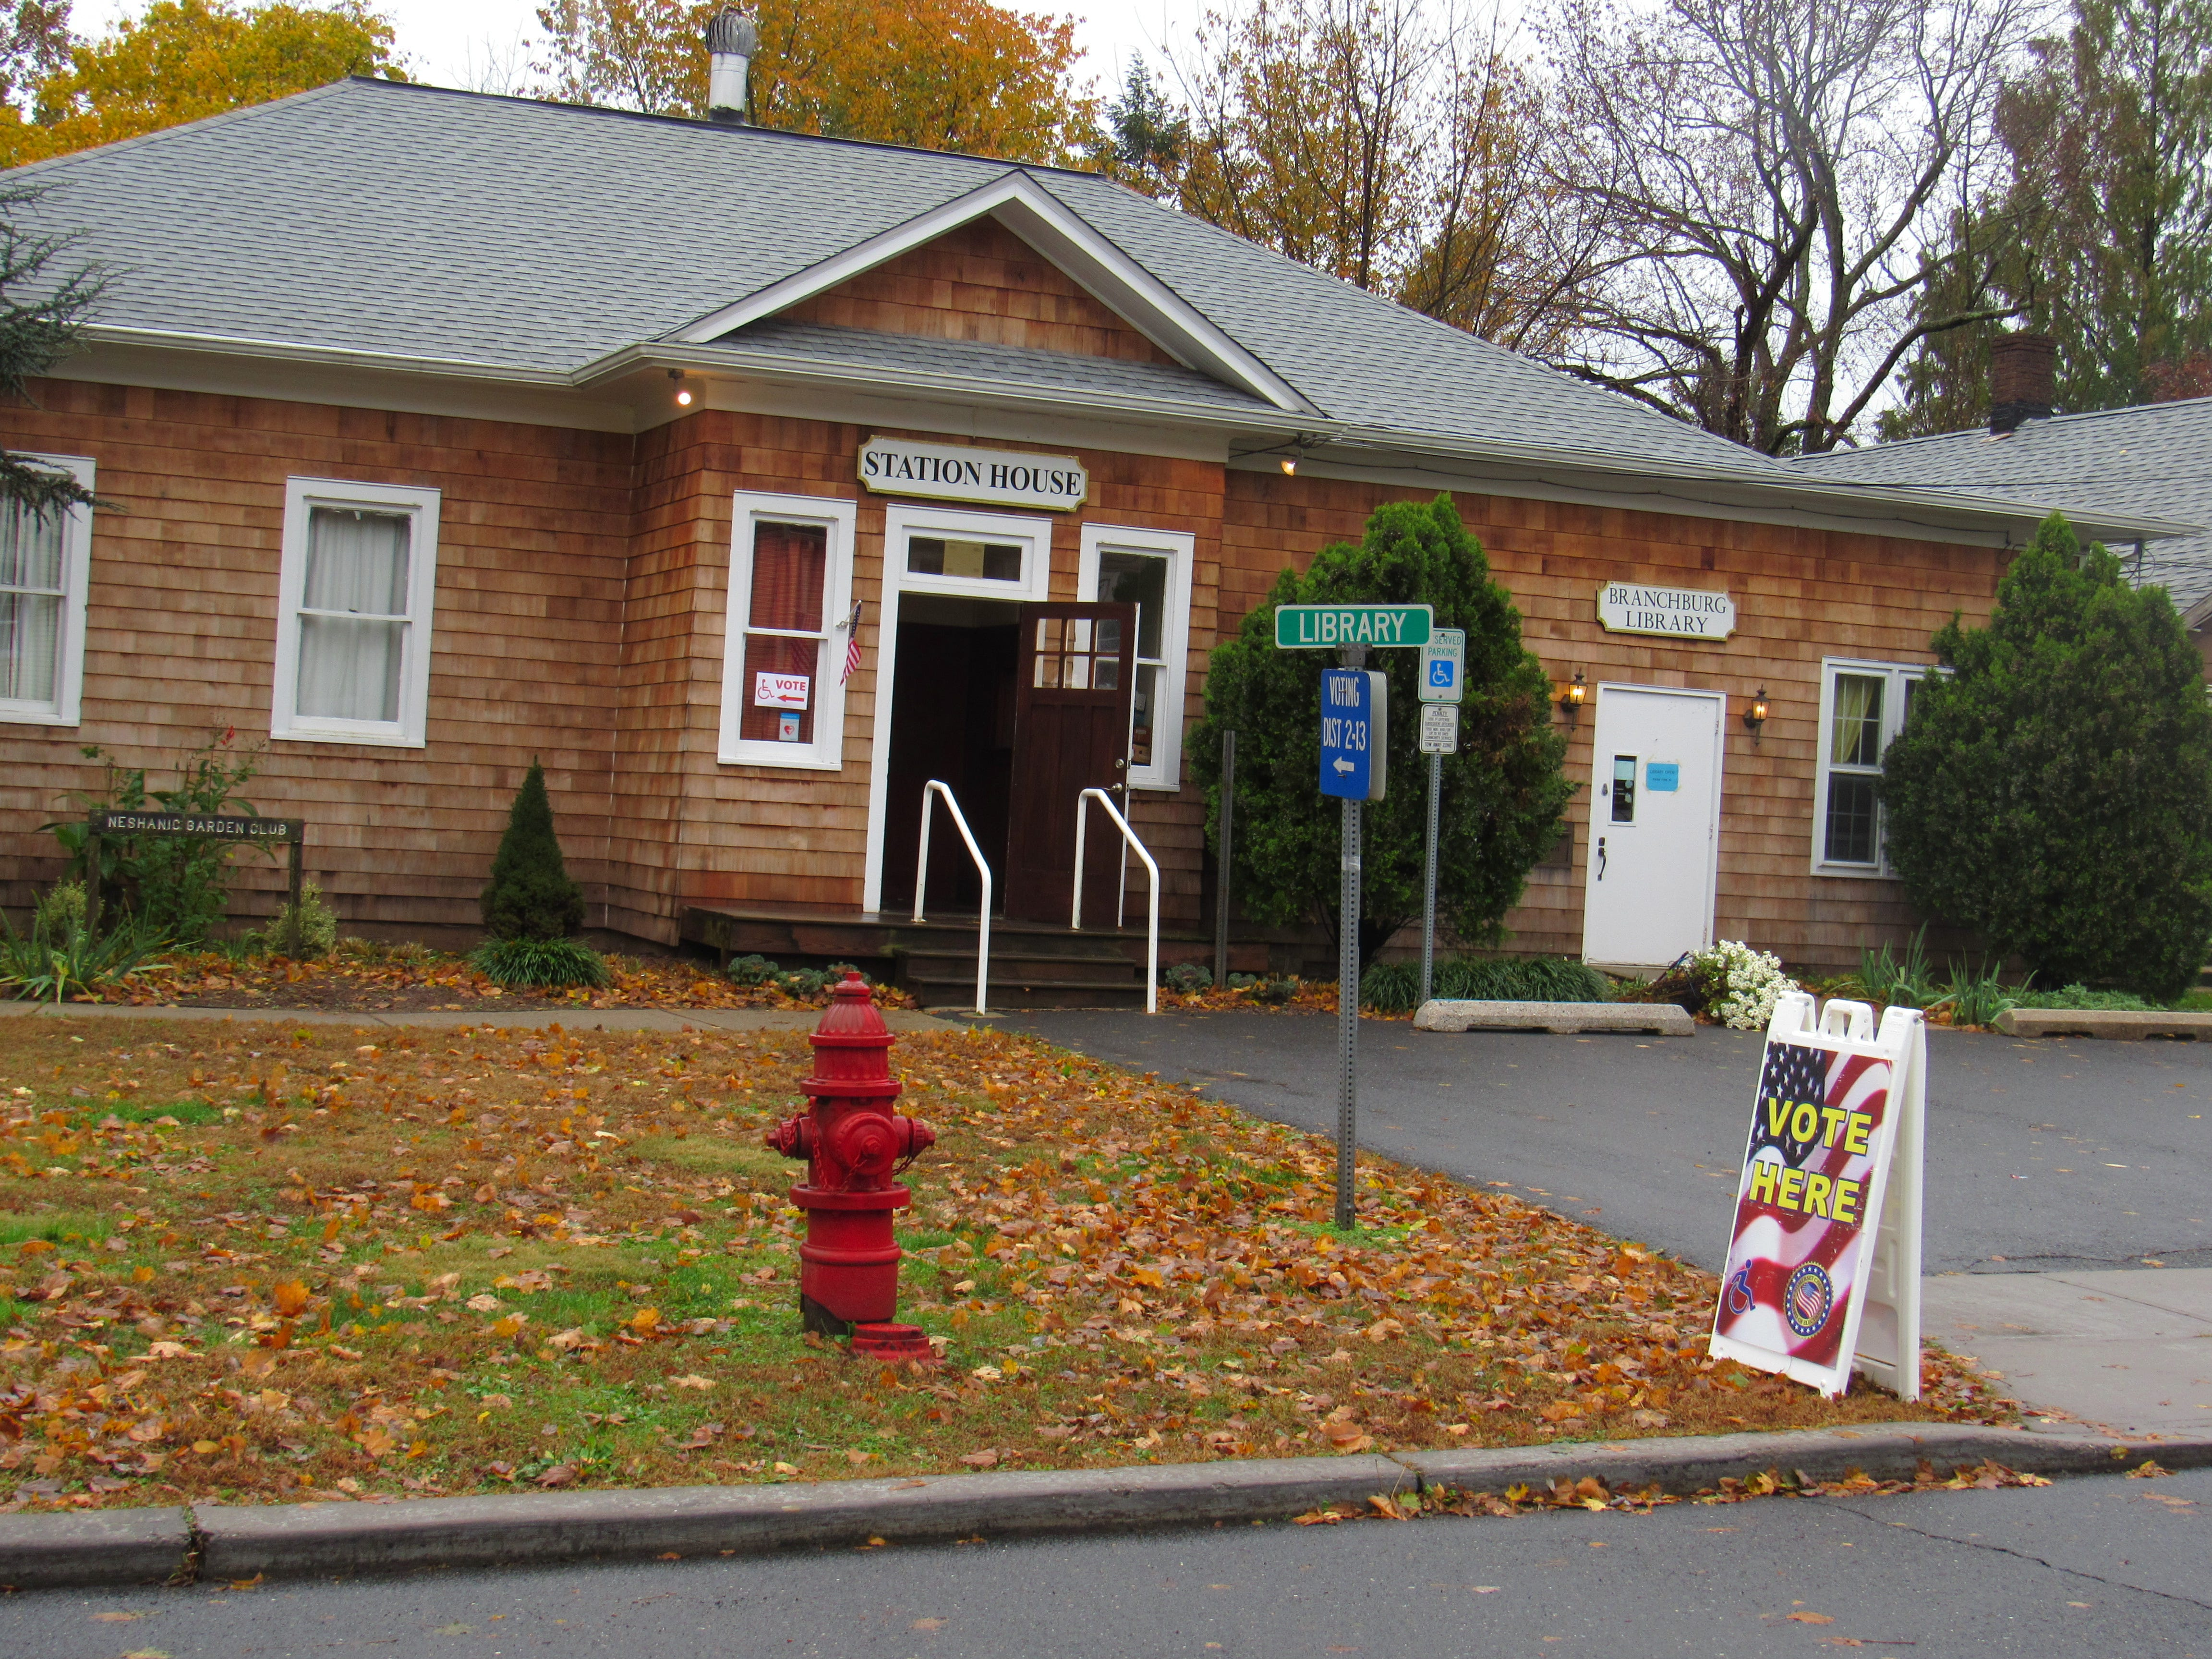 Despite rain earlier in the day, there was a steady stream of voters at the Station House in the Neshanic Station section of Branchburg.